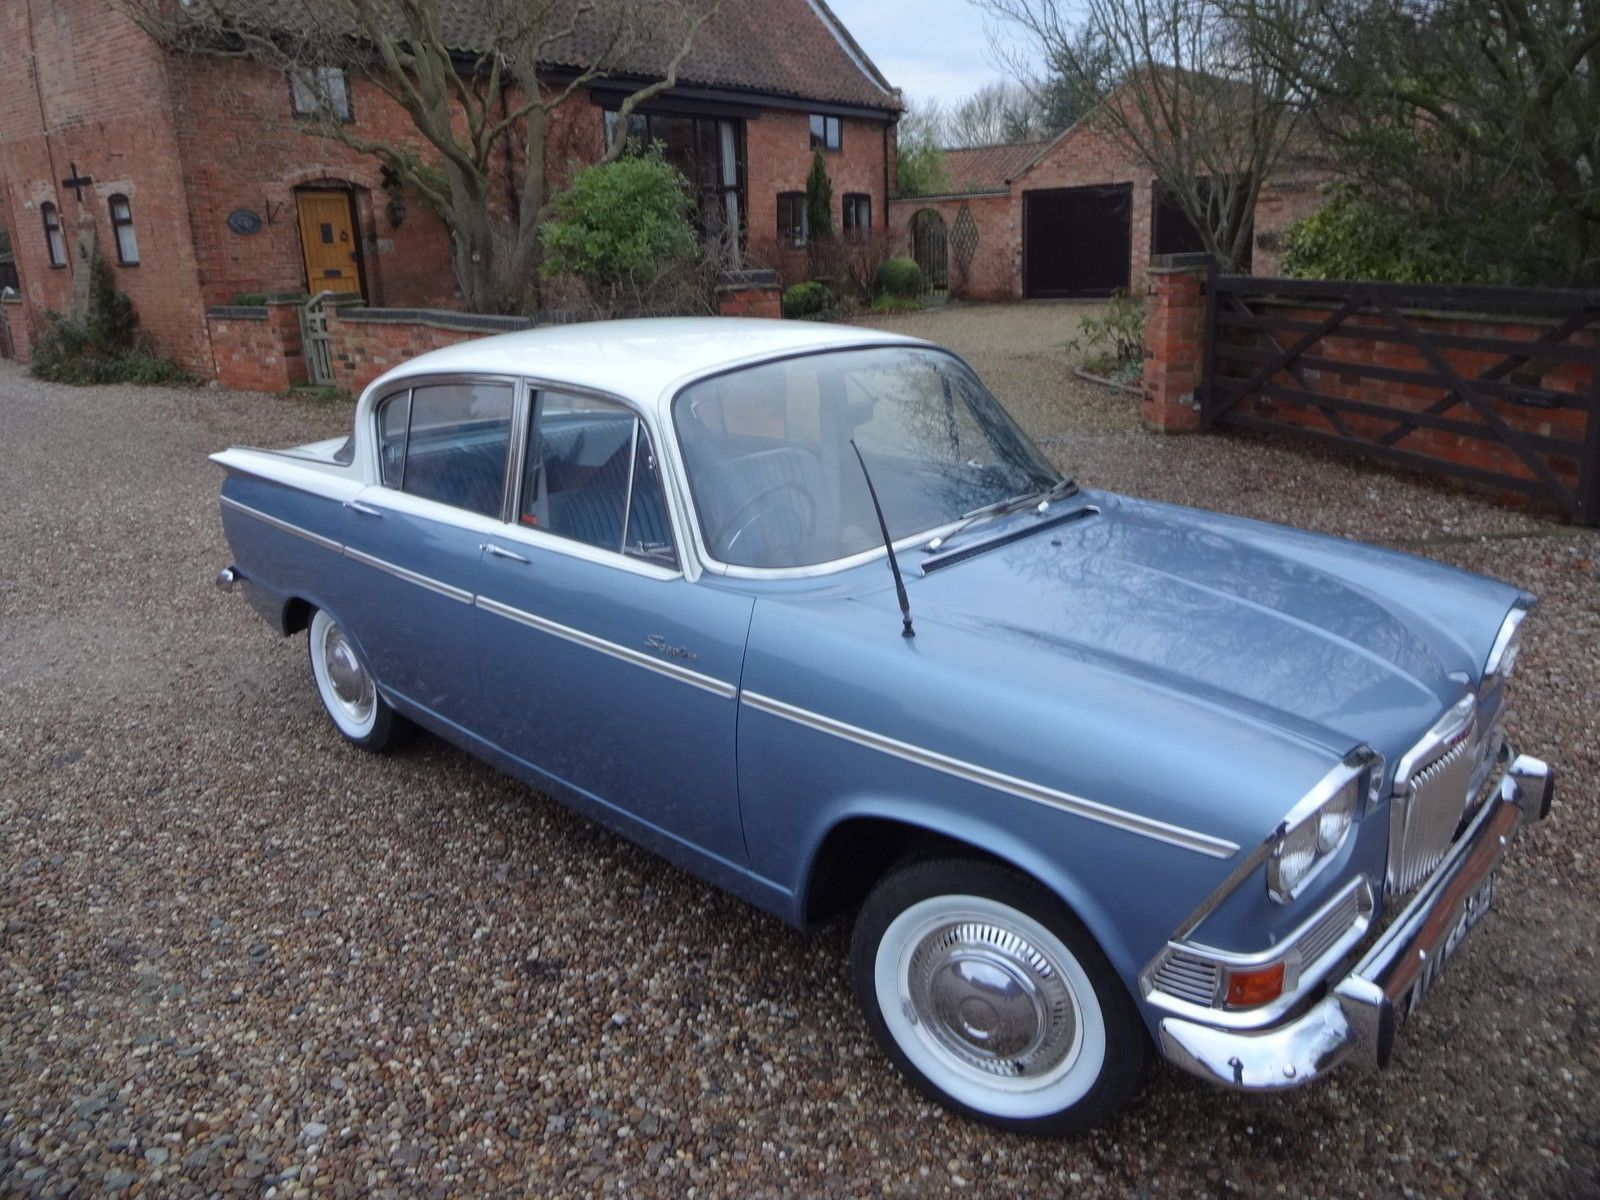 Http Www Ebay Co Uk Itm 1964 Humber Sceptre 192067260402 Hash Item2cb819cff2 G Ypaaaosw2xryas0l Classic Cars Classic Trucks Classic Cars British